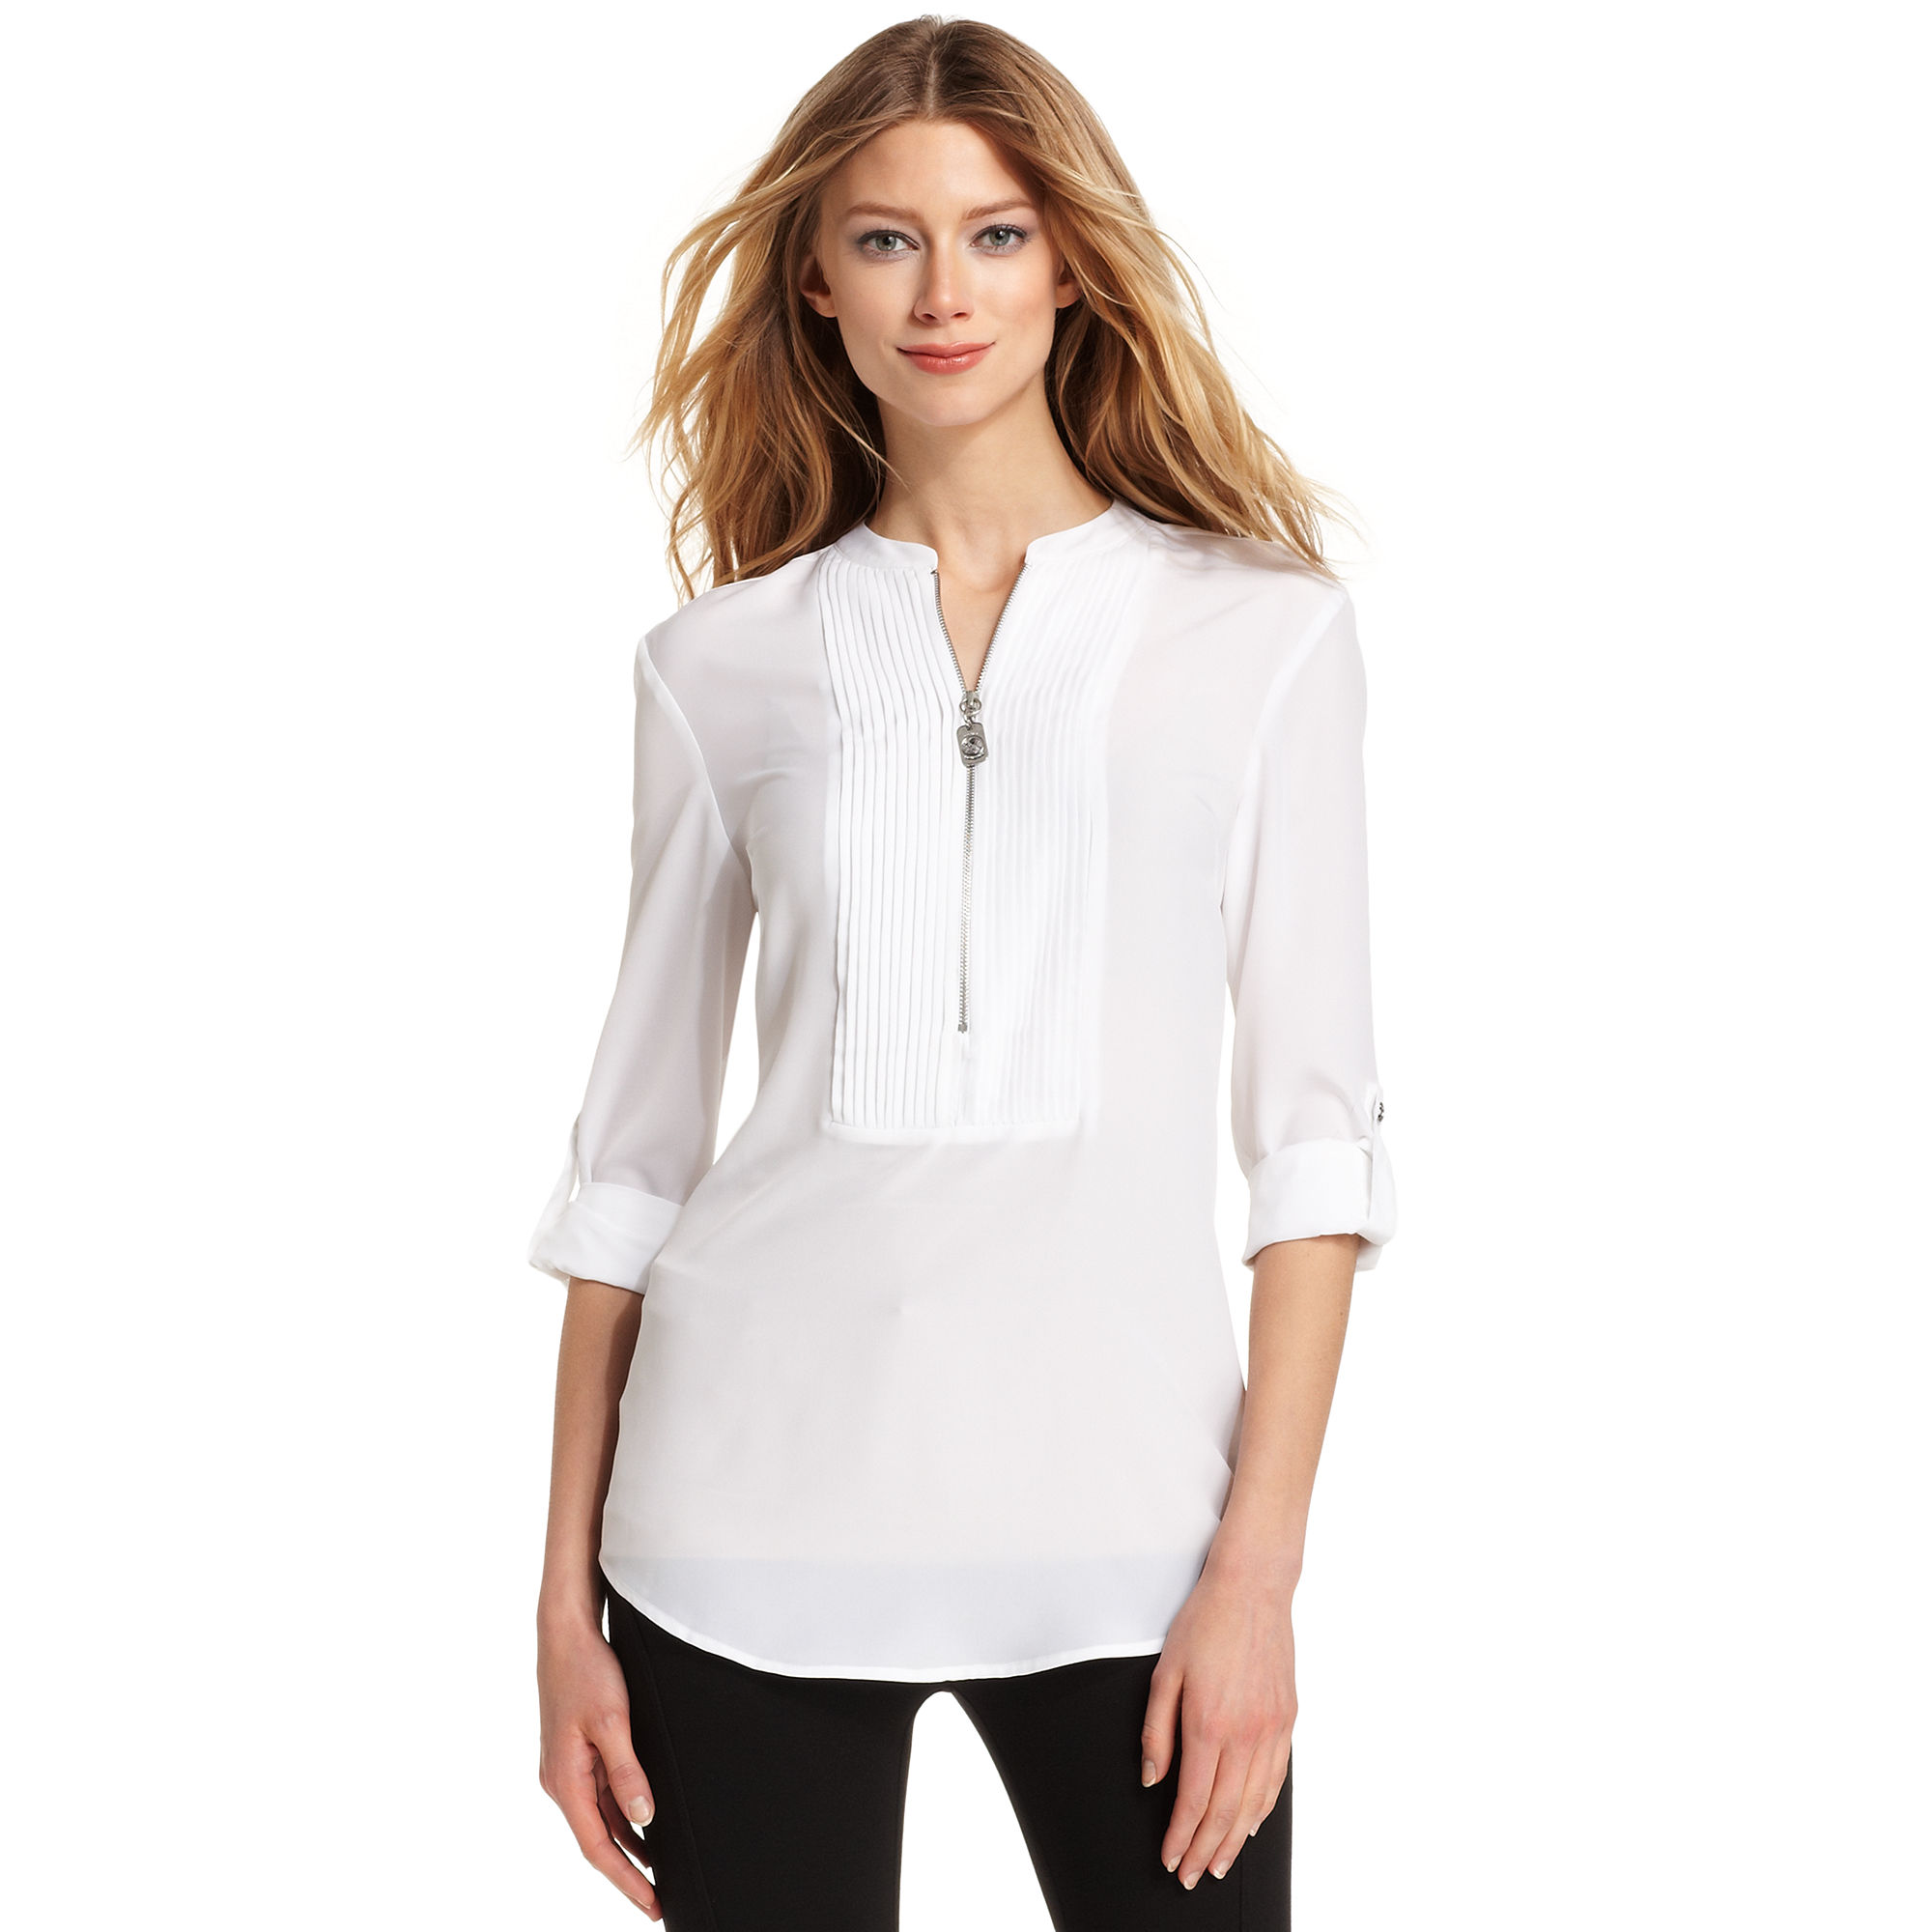 Womens Banded Collar Tuxedo Shirt Bcd Tofu House